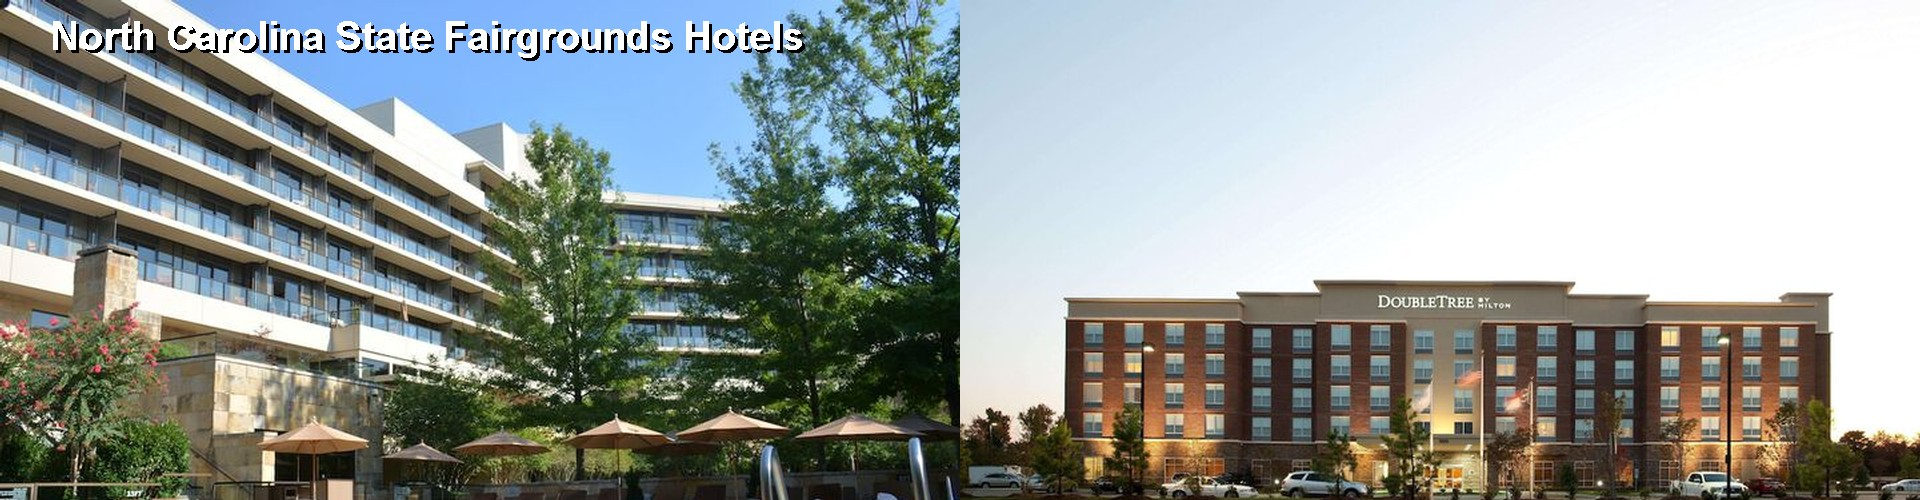 5 Best Hotels Near North Carolina State Fairgrounds